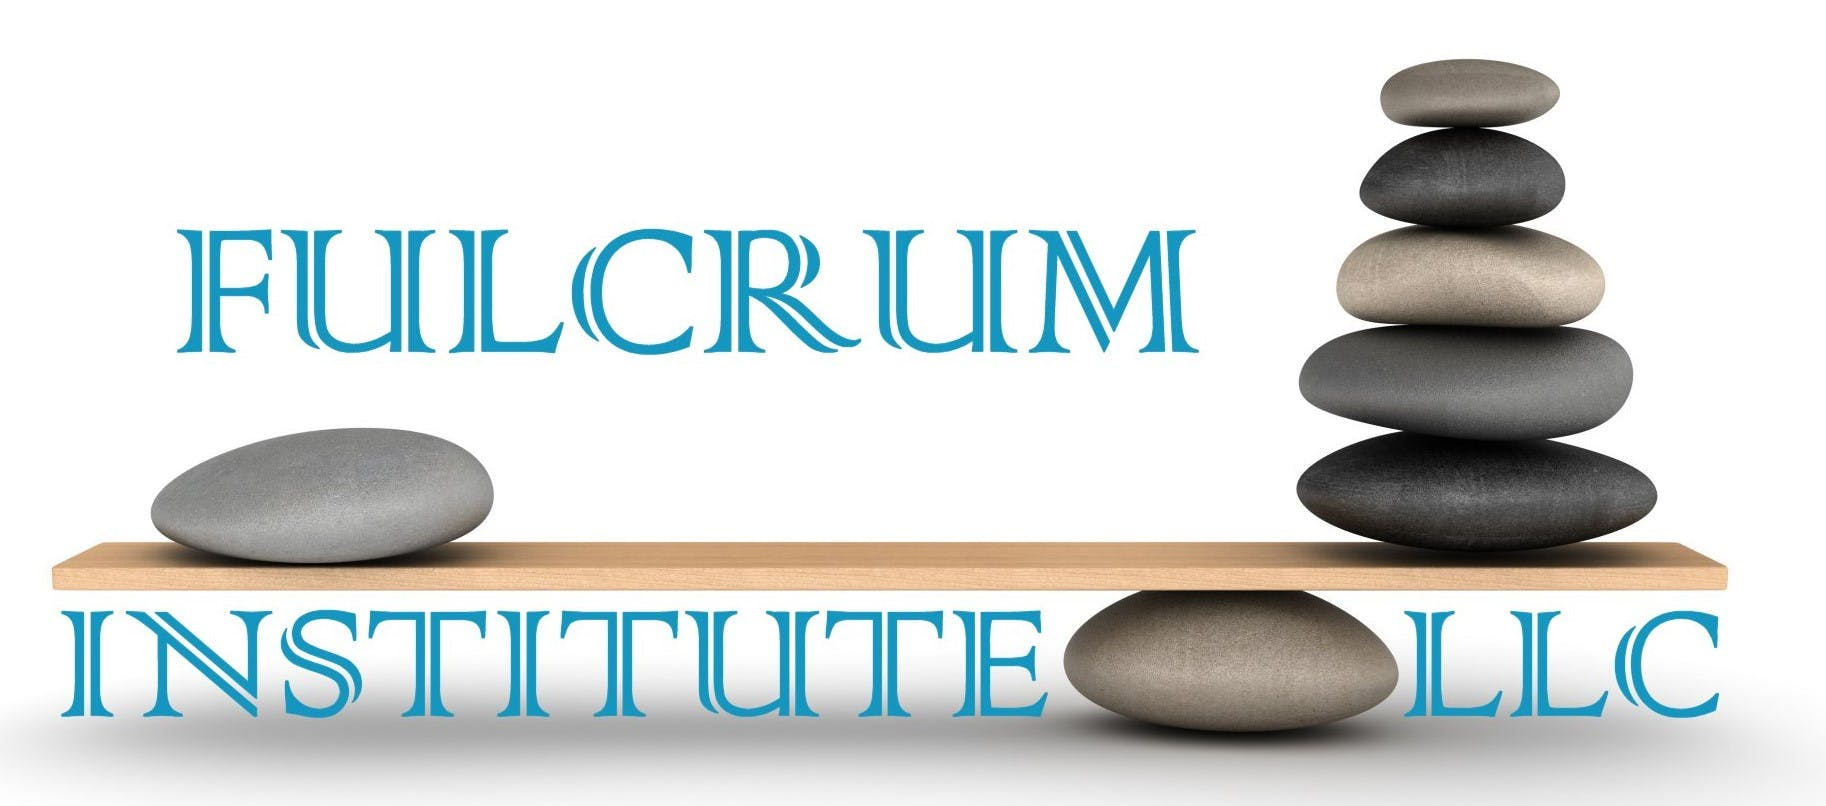 Fulcrum Institute | Manual Edge Physiotherapy